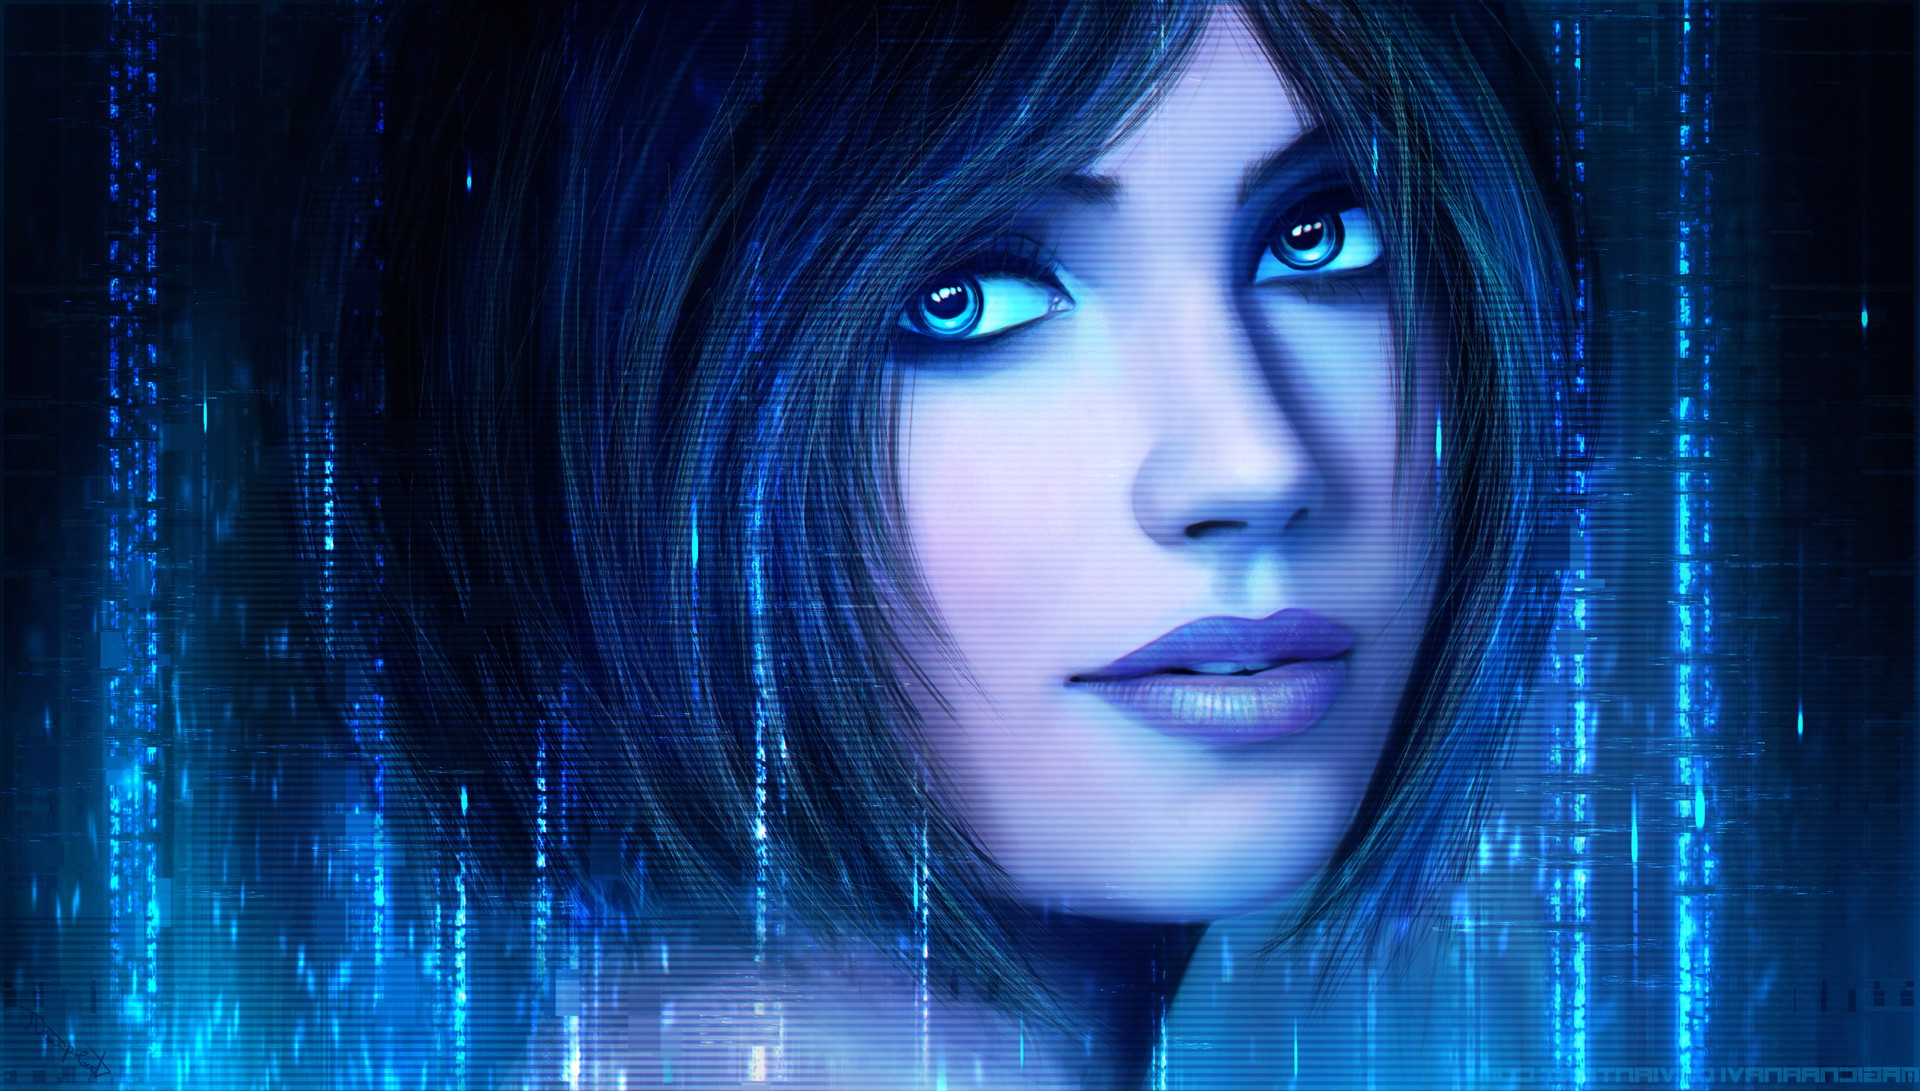 Cortana Halo 126777 Hd Wallpaper Backgrounds Download